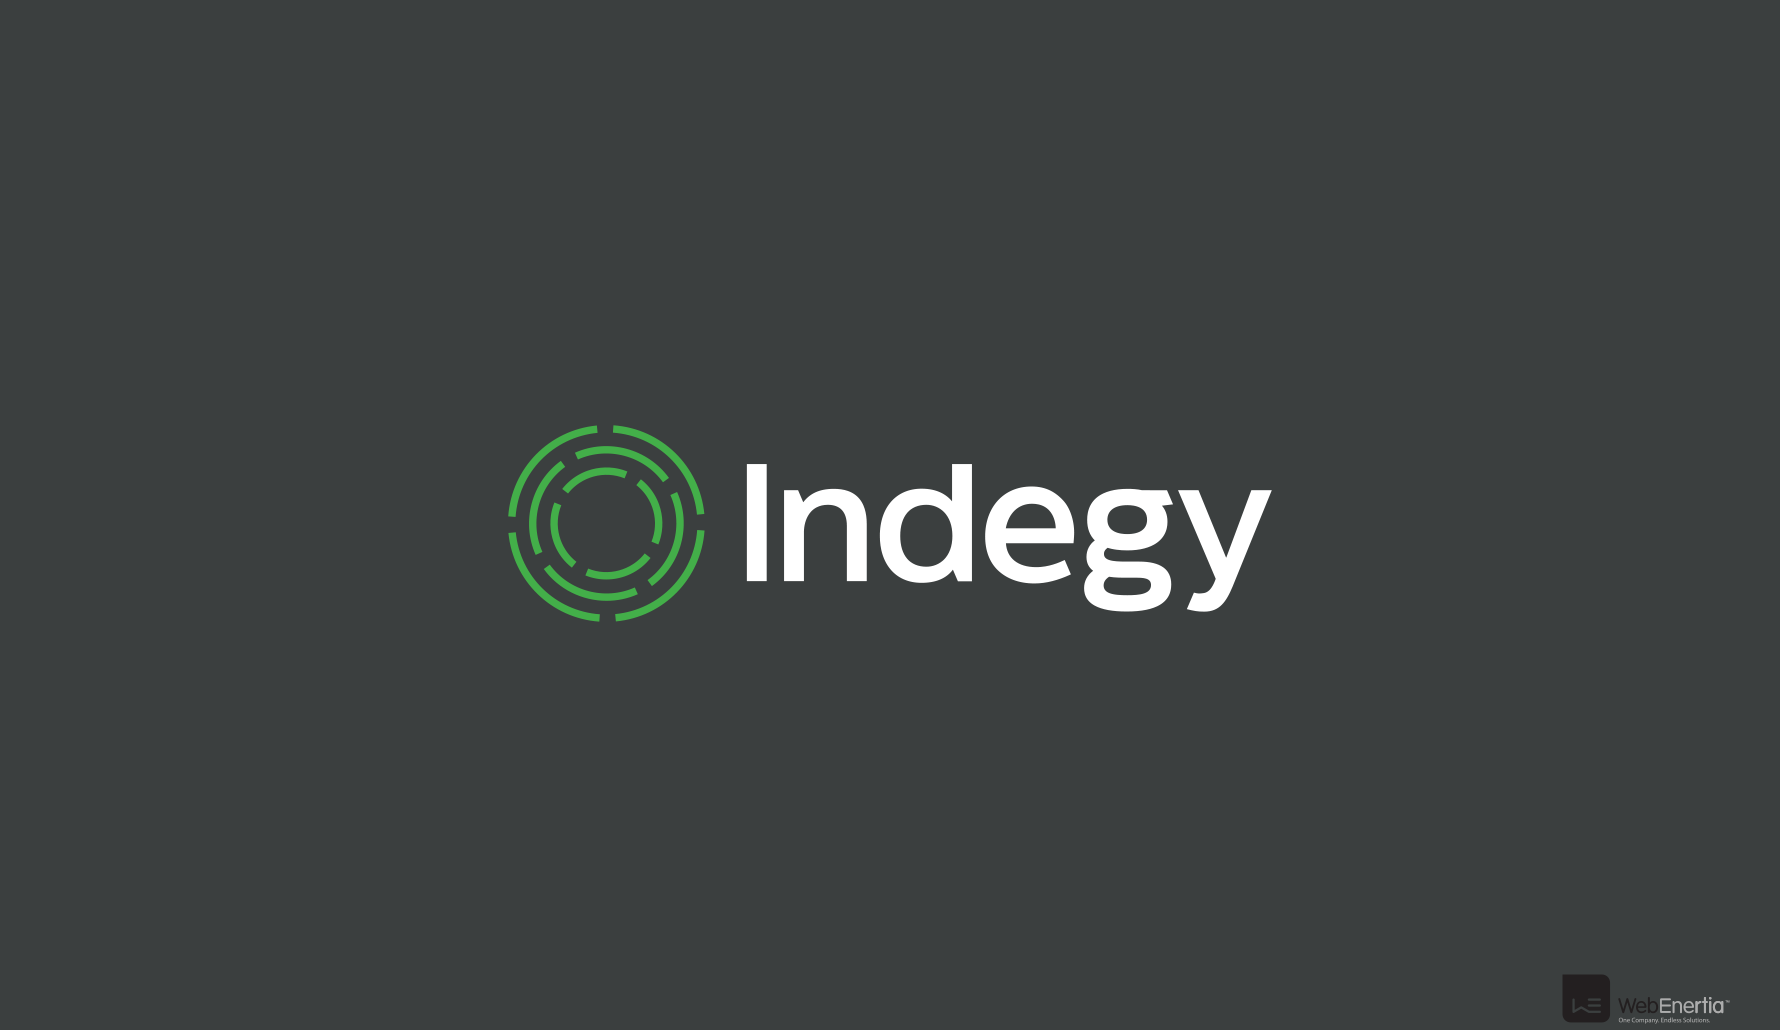 Indegy Brand Update & Guidelines Indegy in white text with green circular maze logo